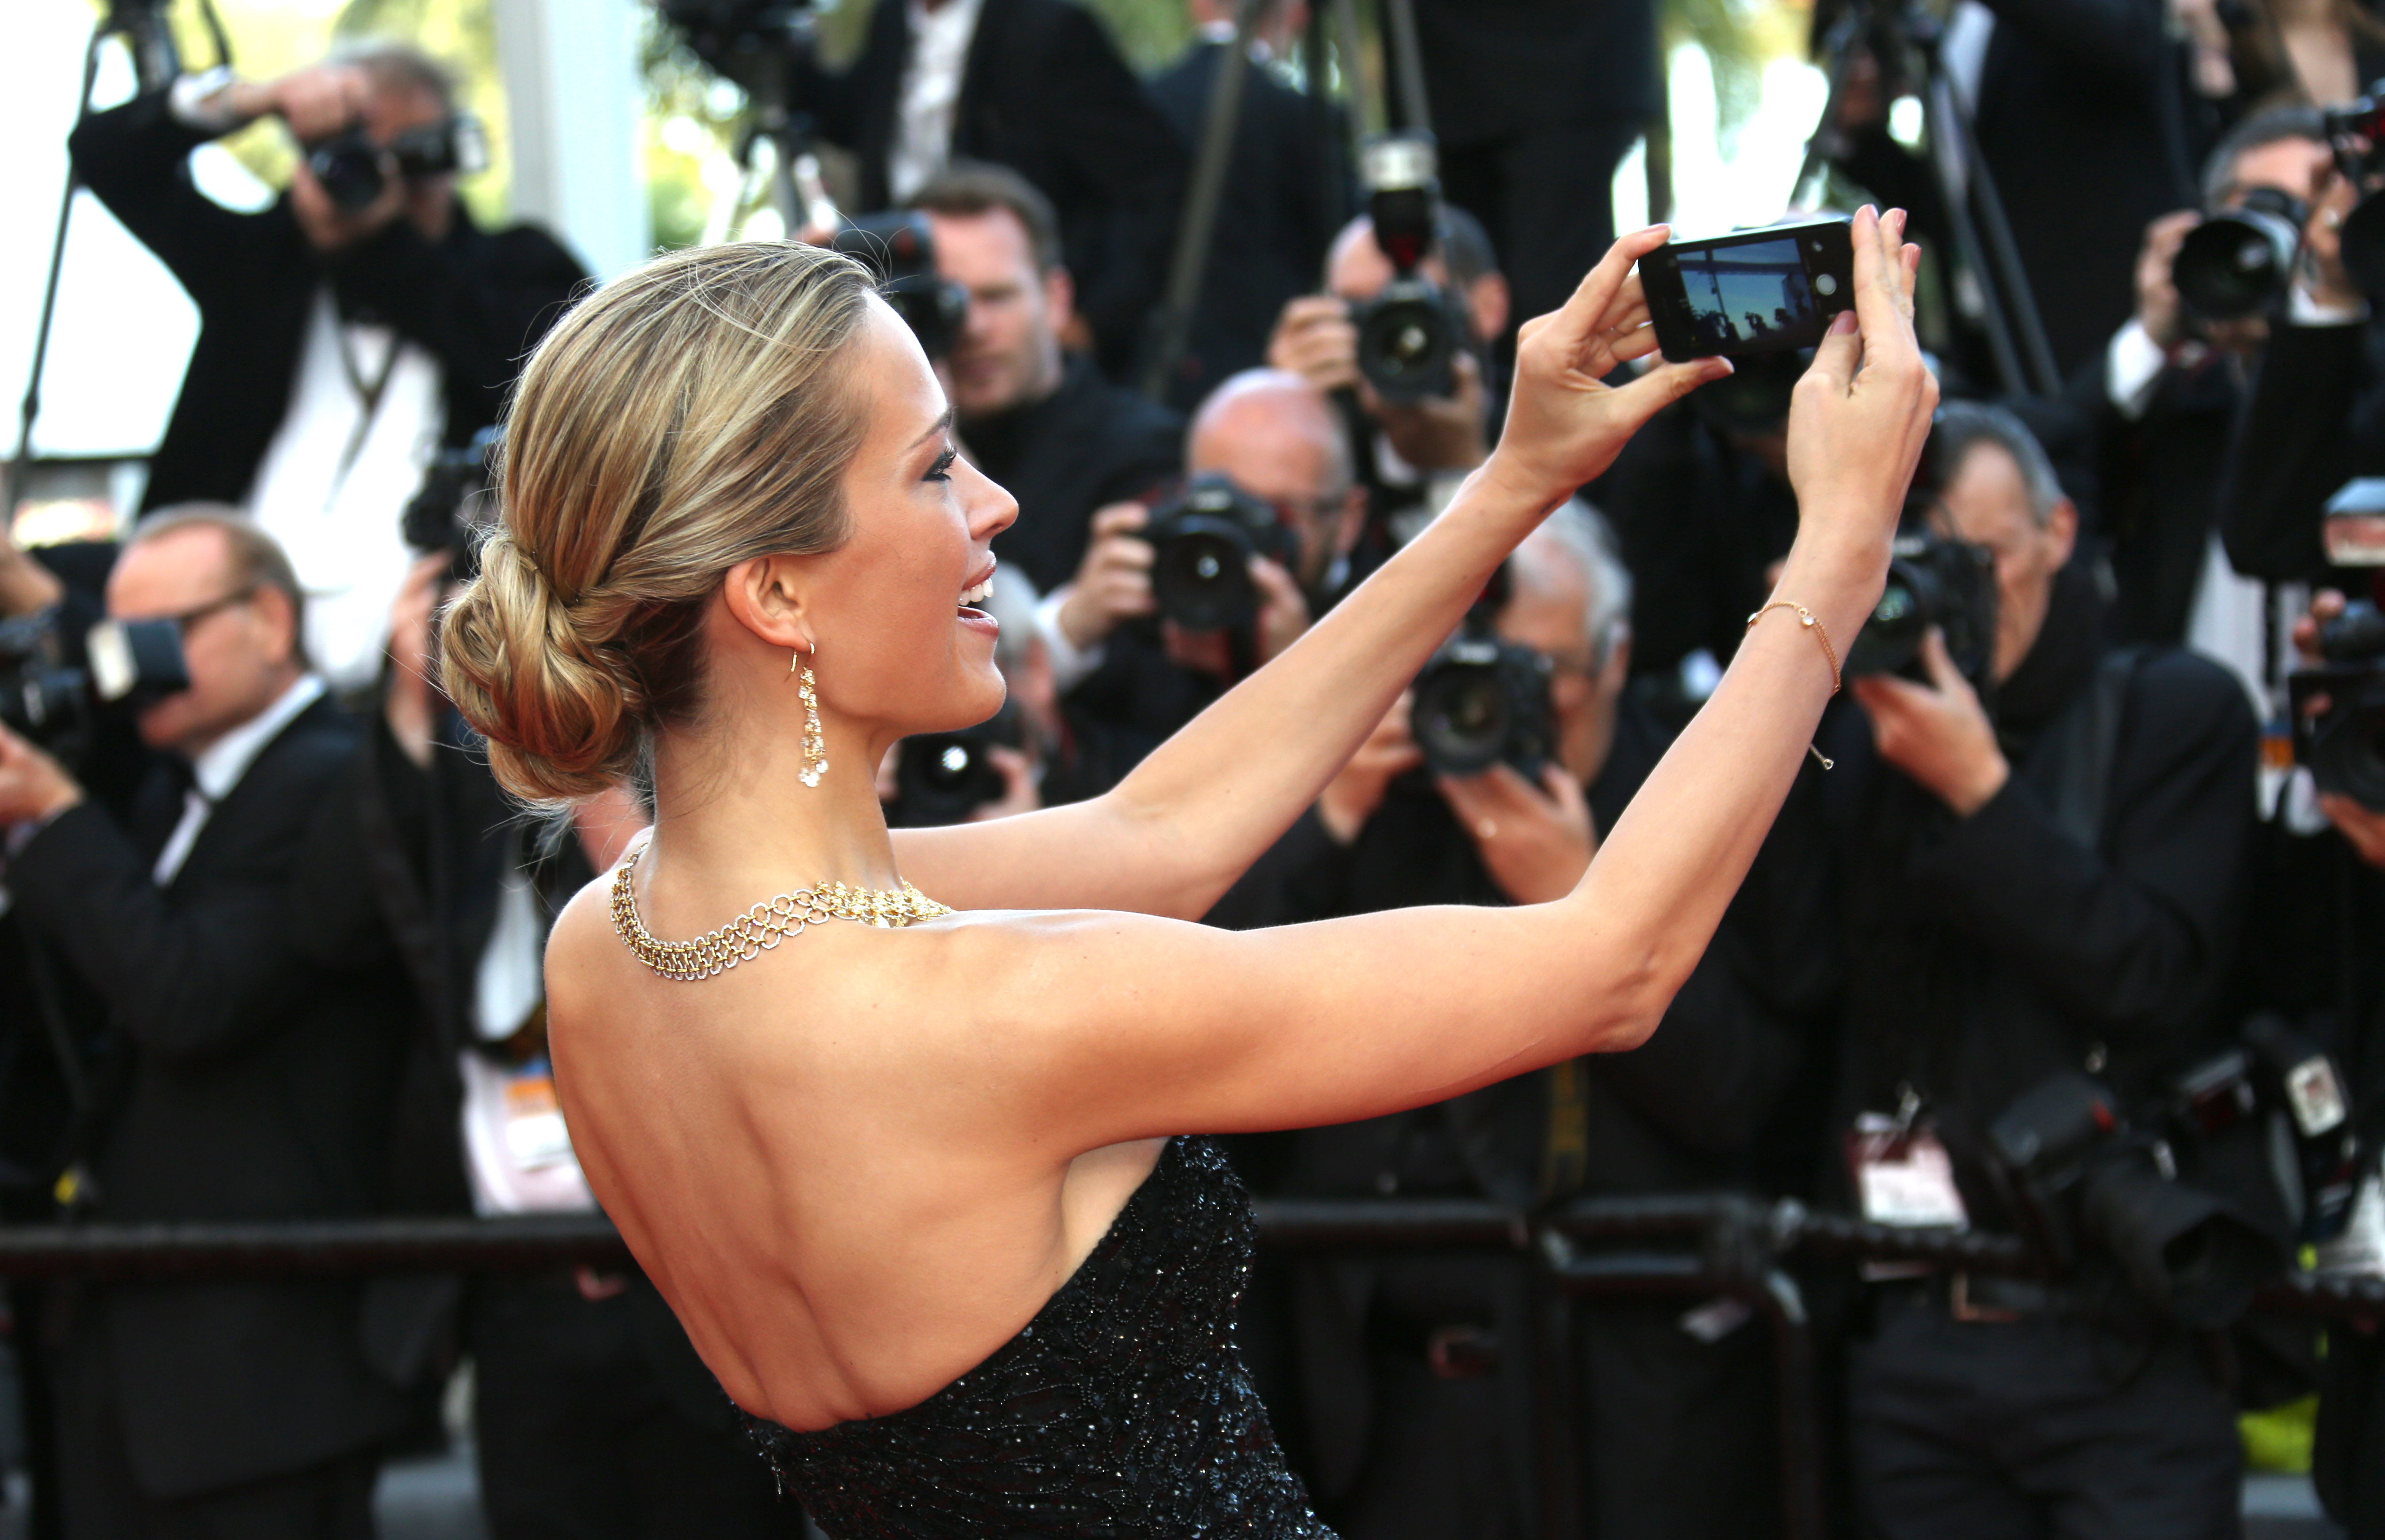 Petra Nemcova on the red carpet for the screening of Two Days, One Night (Deux jours, une nuit) at the 67th international film festival, Cannes, southern France, Tuesday, May 20, 2014. (Photo by Joel Ryan/Invision/AP)